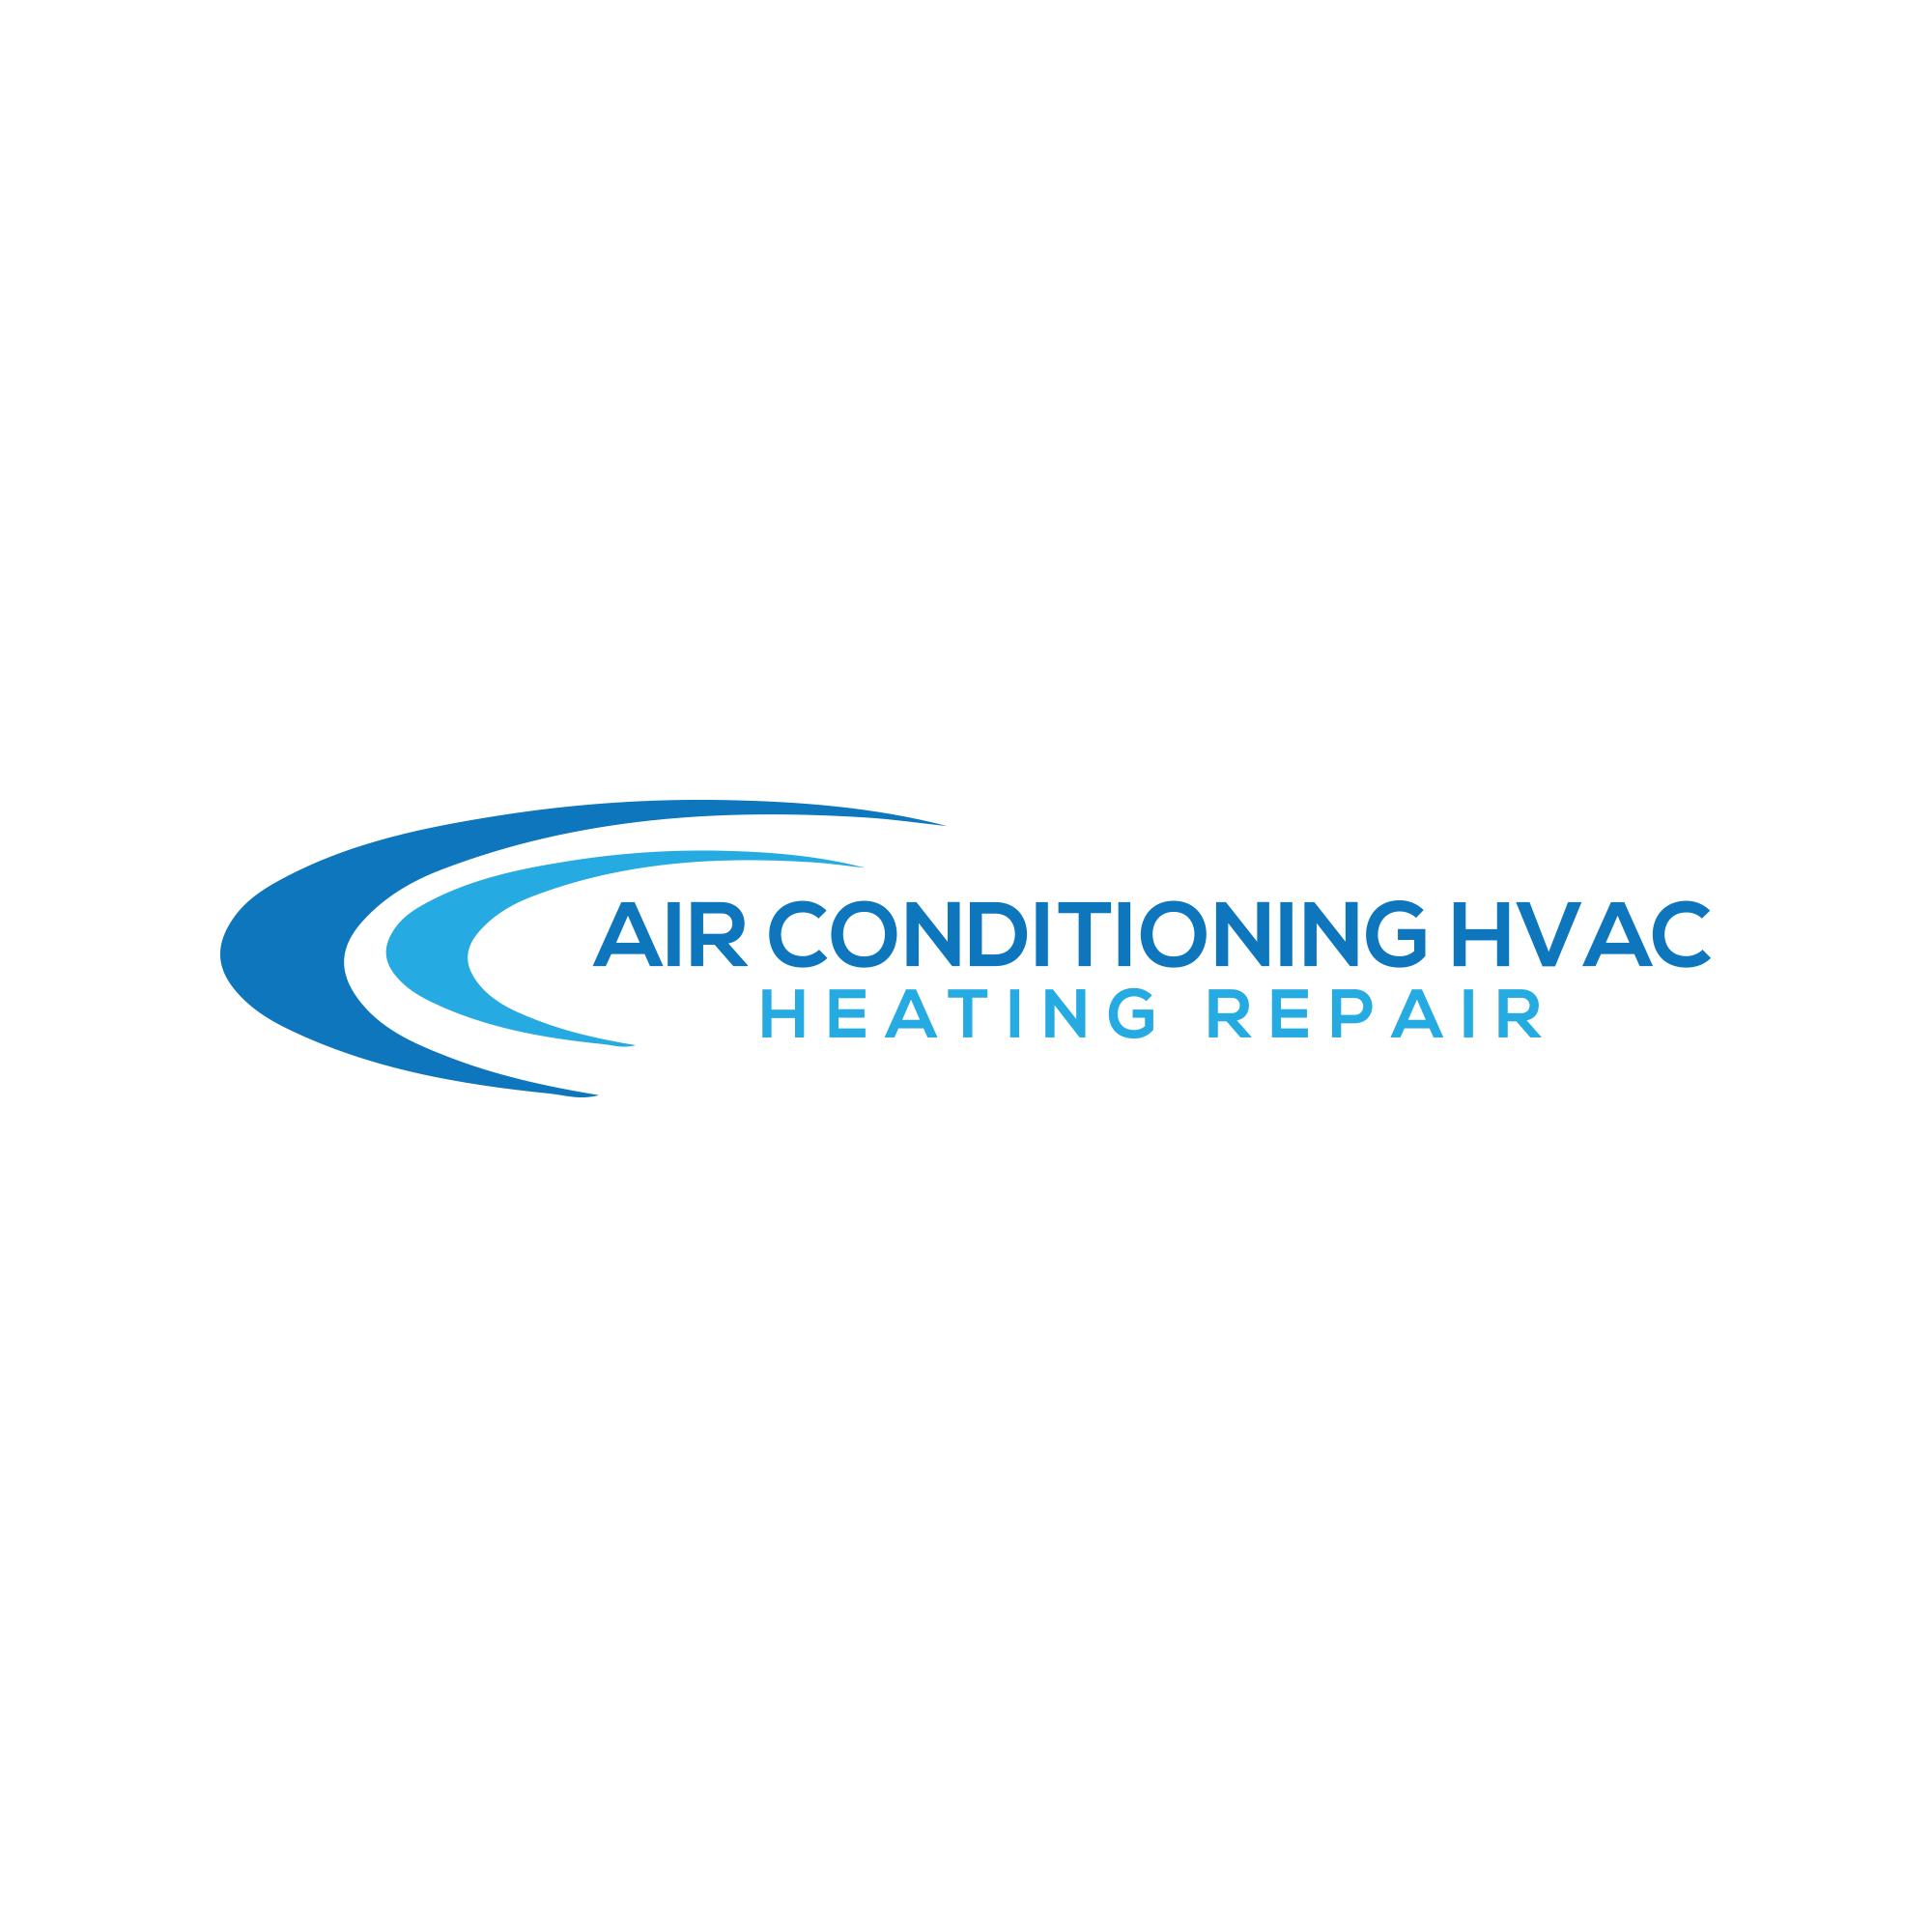 Air Conditioning HVAC Heating Repair Got Voted As the Best HVAC